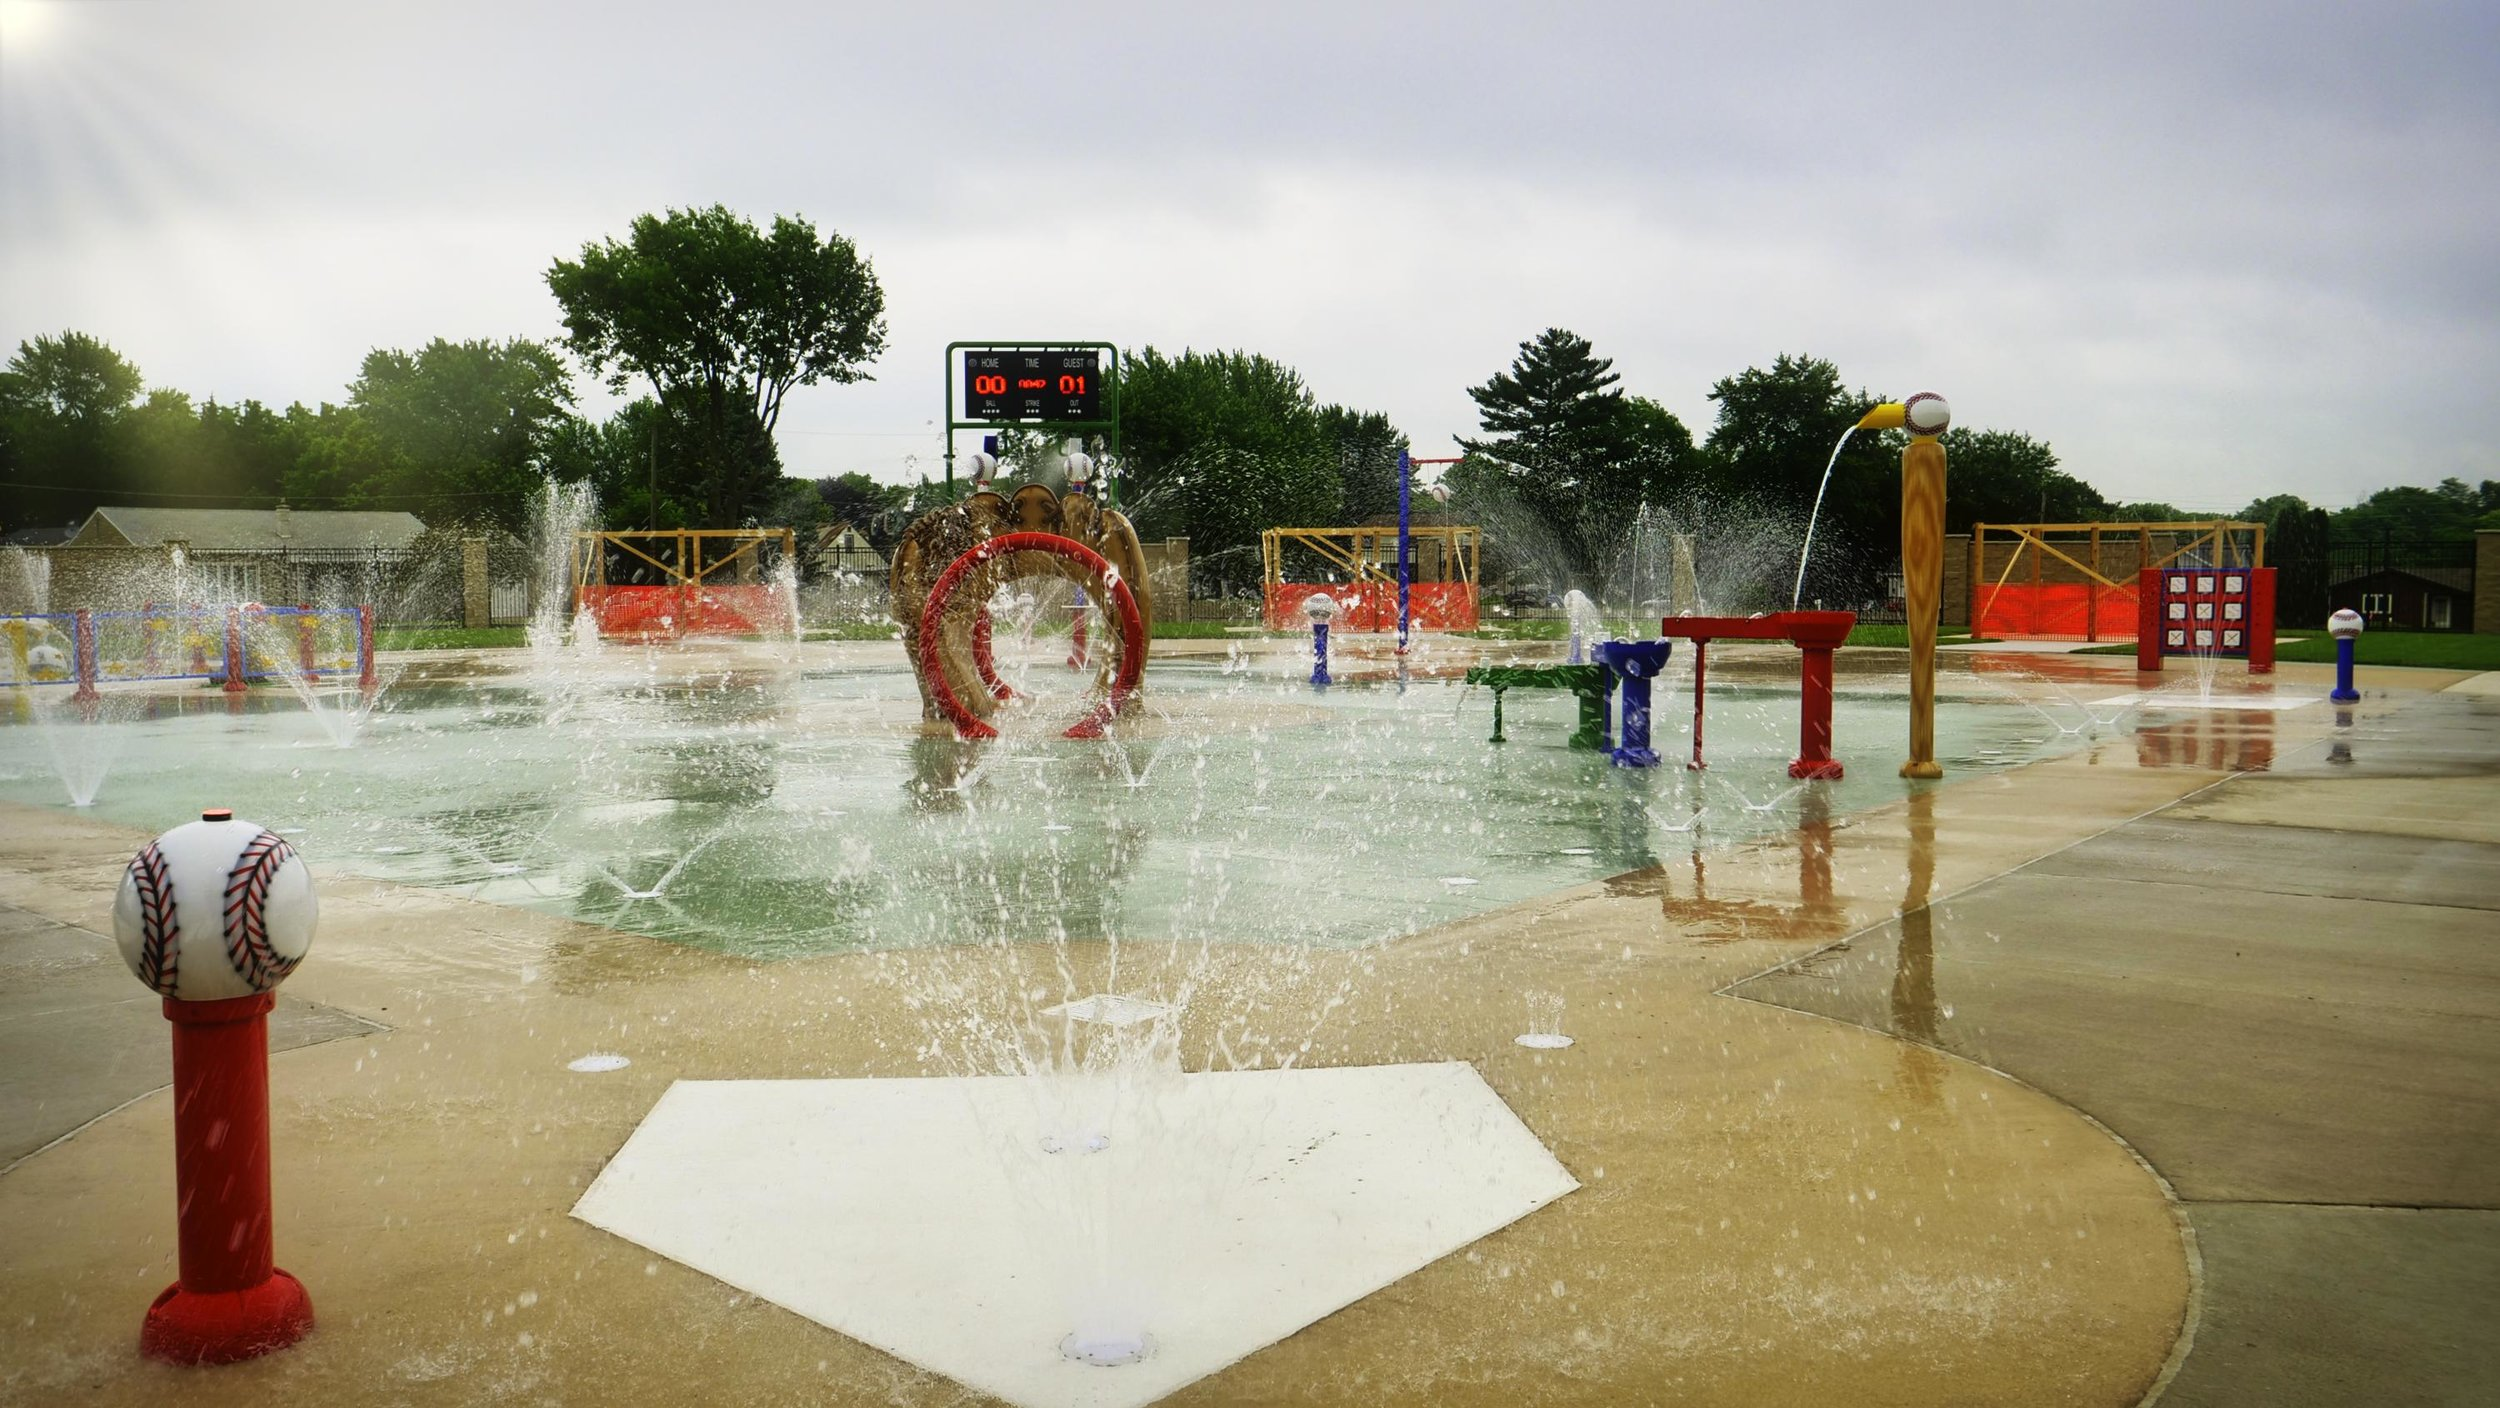 Kids play area with a baseball theme at Peru's Splash Field in IL